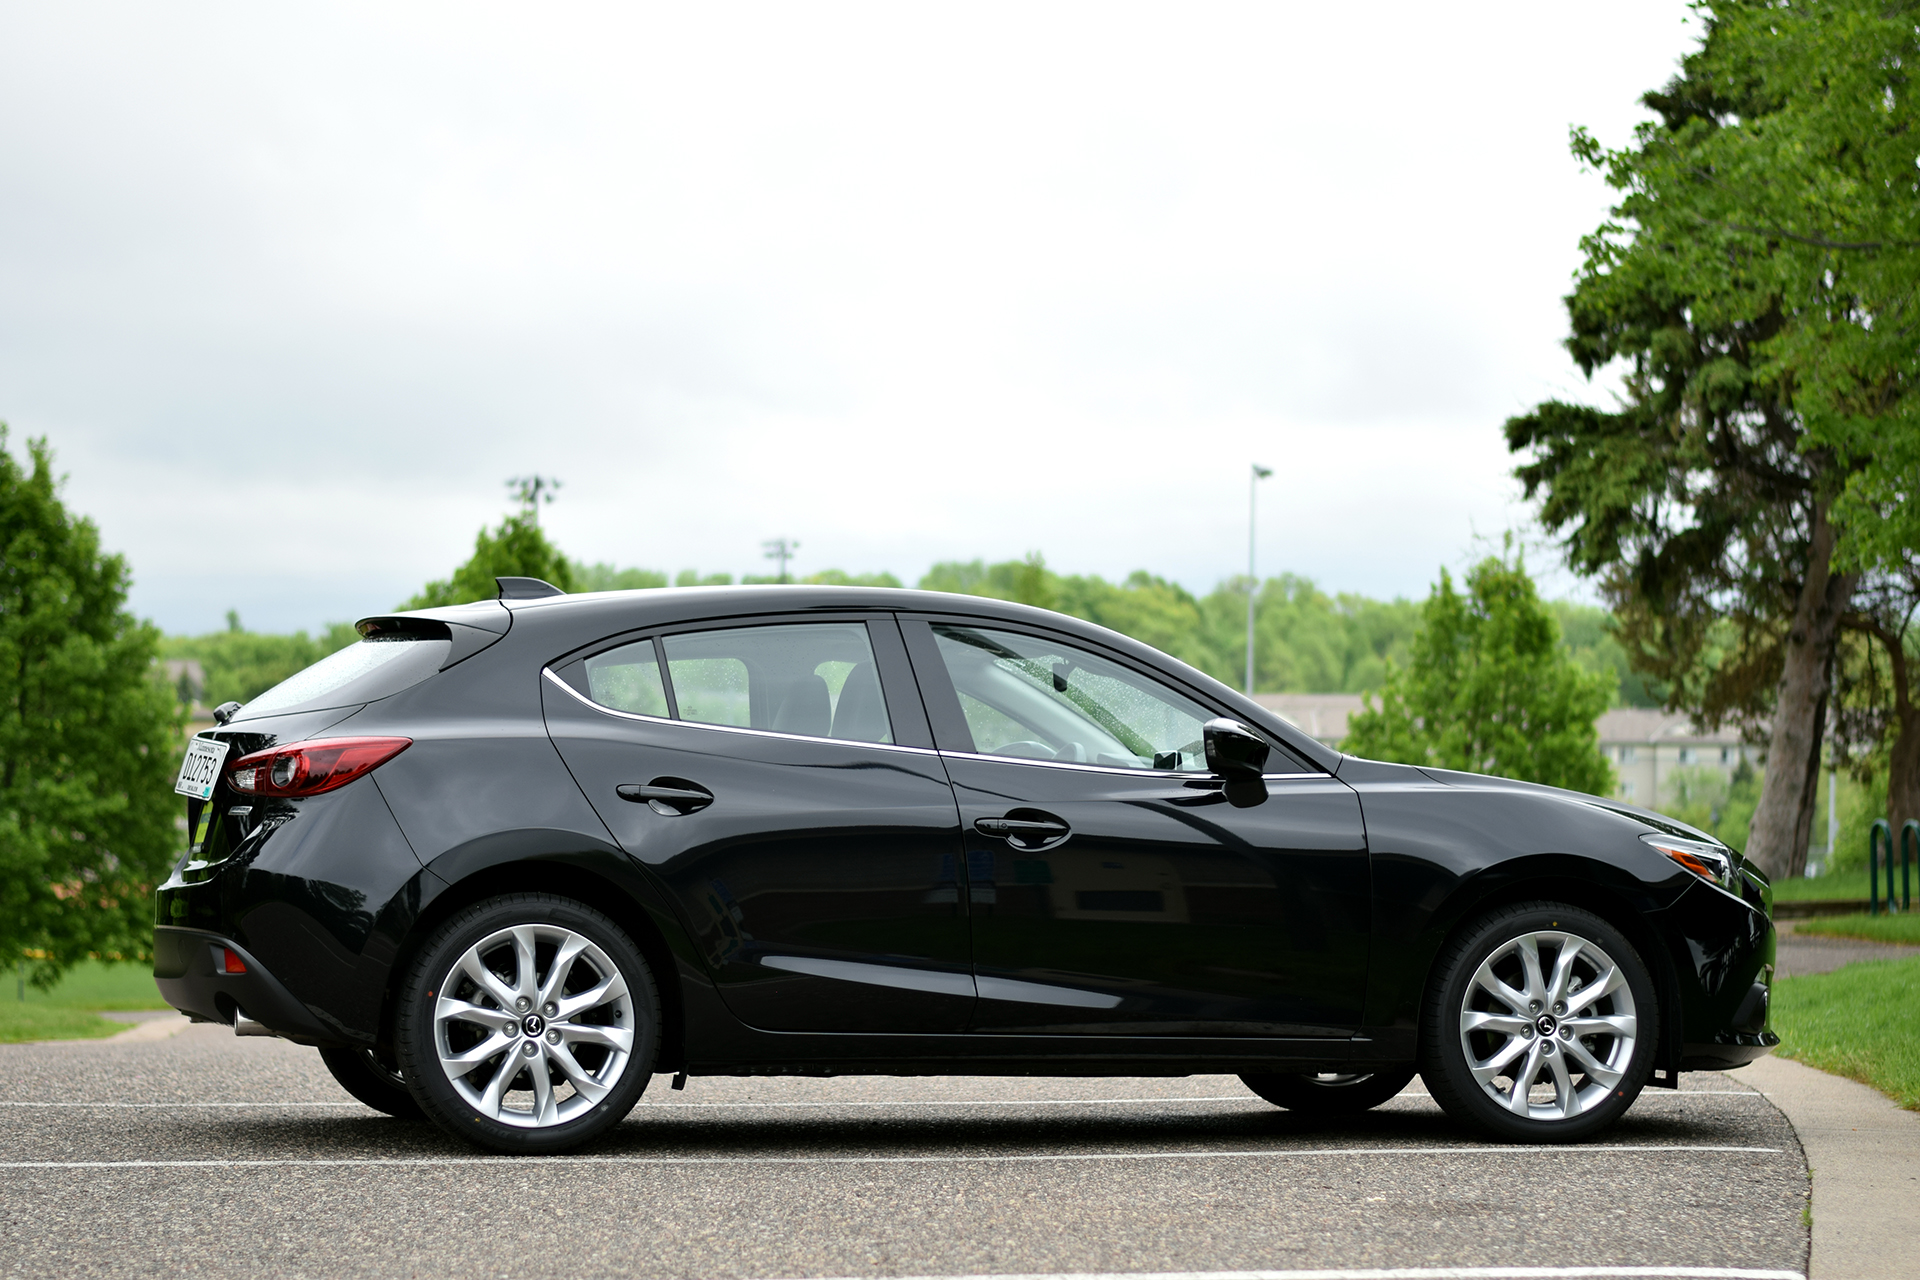 2014 mazda3 hatchback morrie 39 s automotive group blog. Black Bedroom Furniture Sets. Home Design Ideas